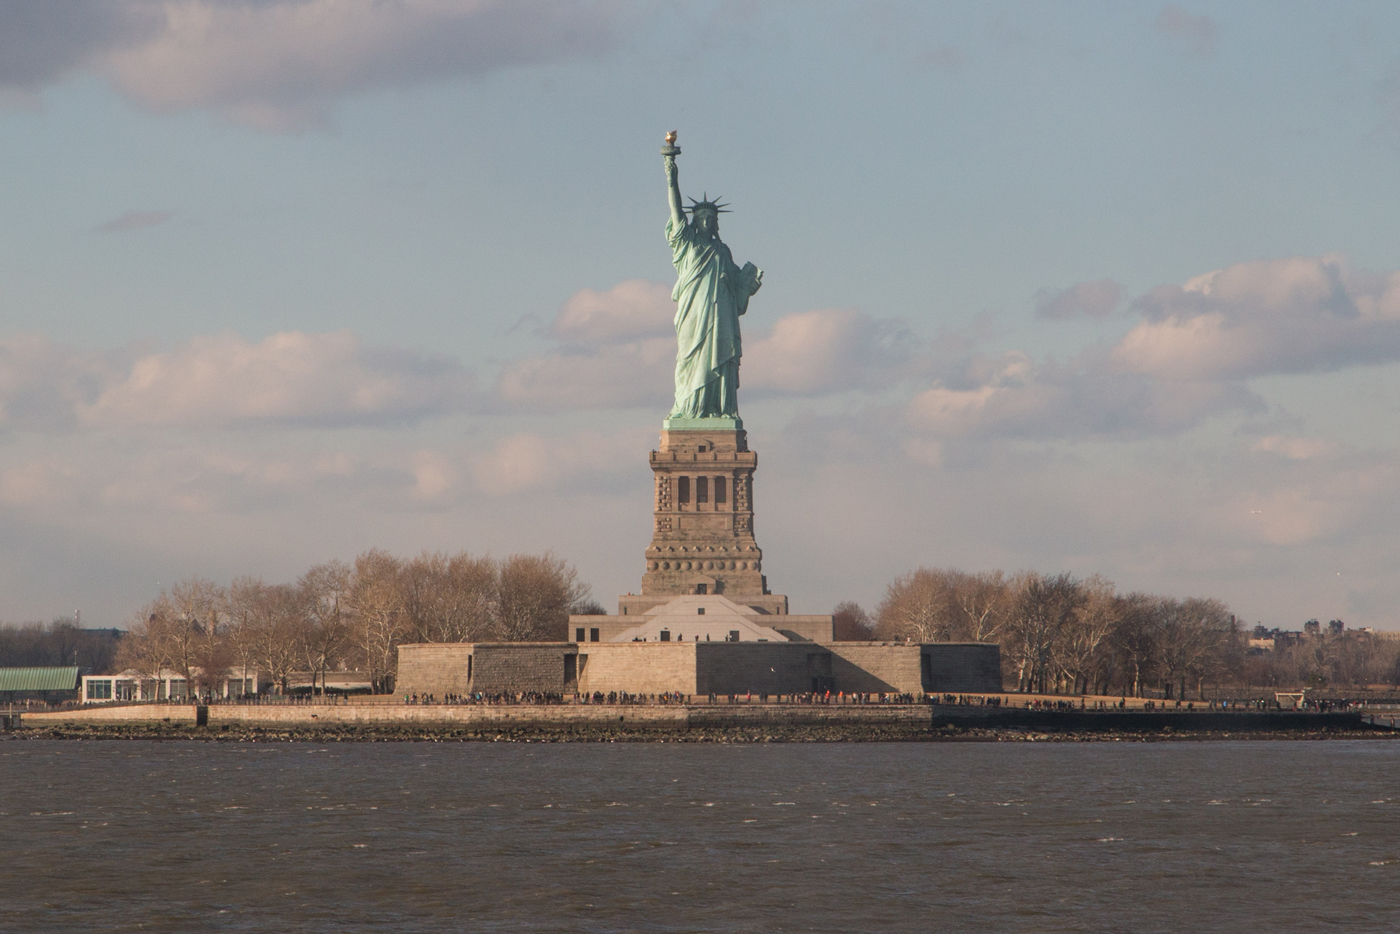 Statue of Liberty in the warm afternoon light